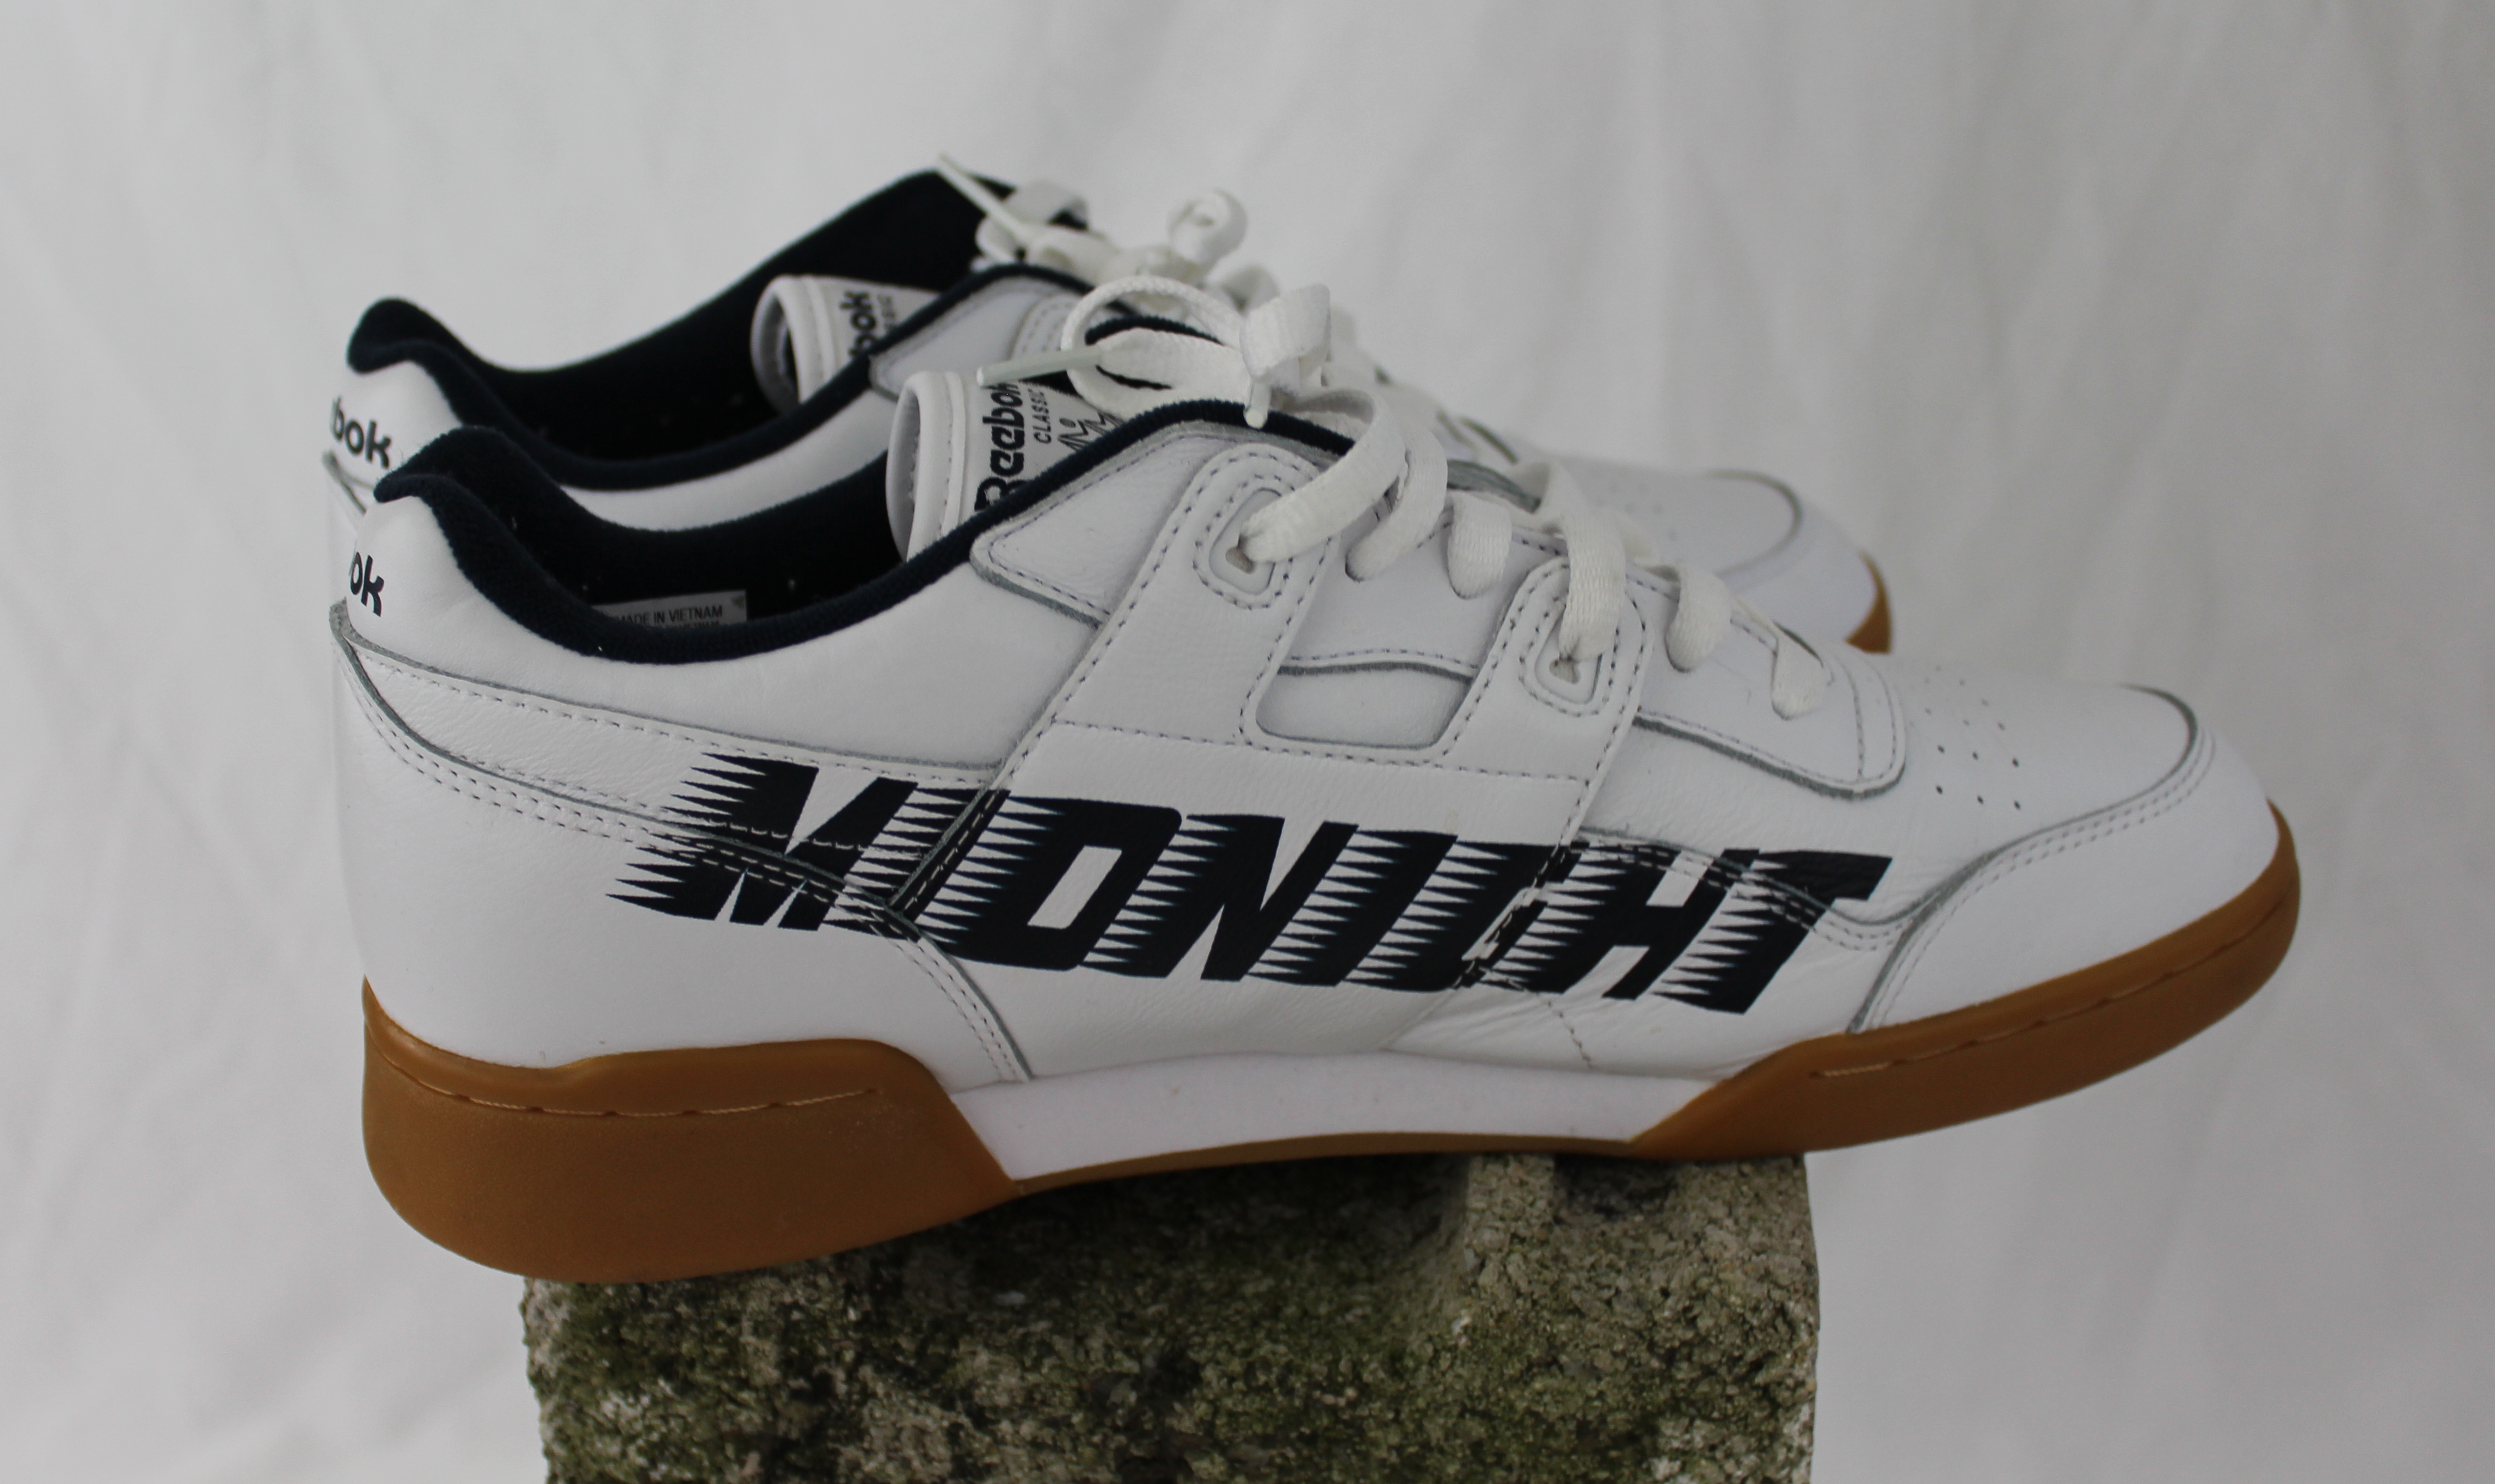 c5aa1cc10ca6 Reebok Midnight Rave Sneakers Size 11 - Low-Top Sneakers for Sale - Grailed